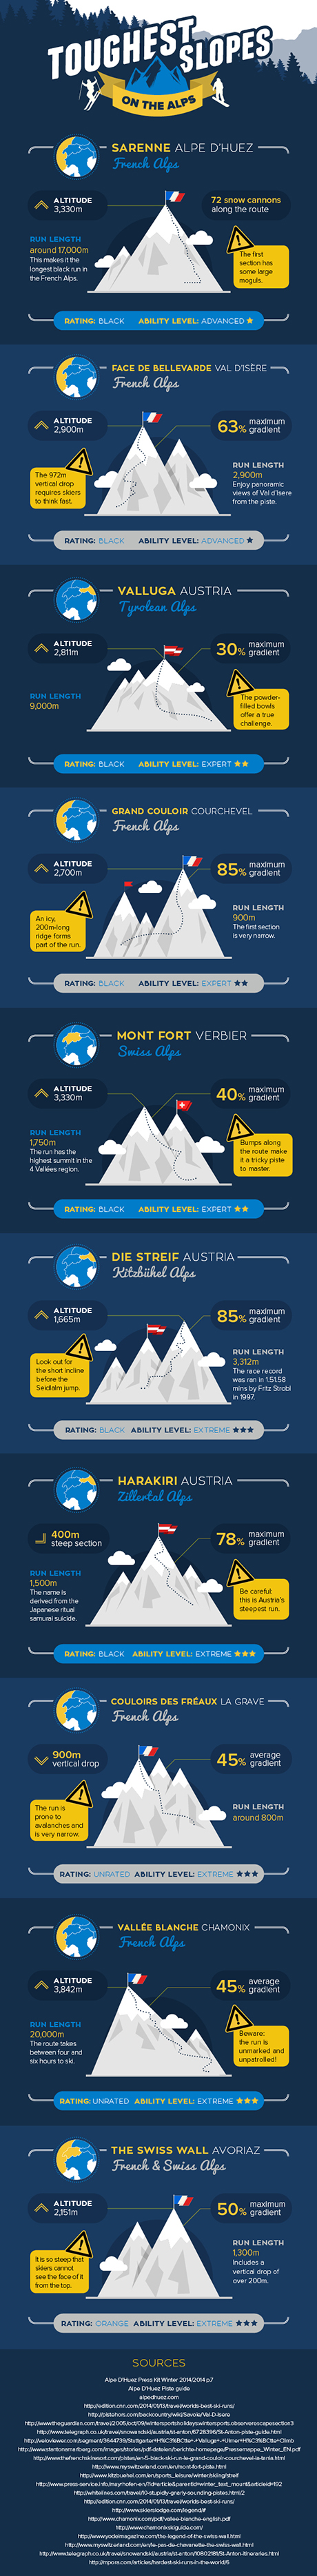 Toughest slopes on the Alps